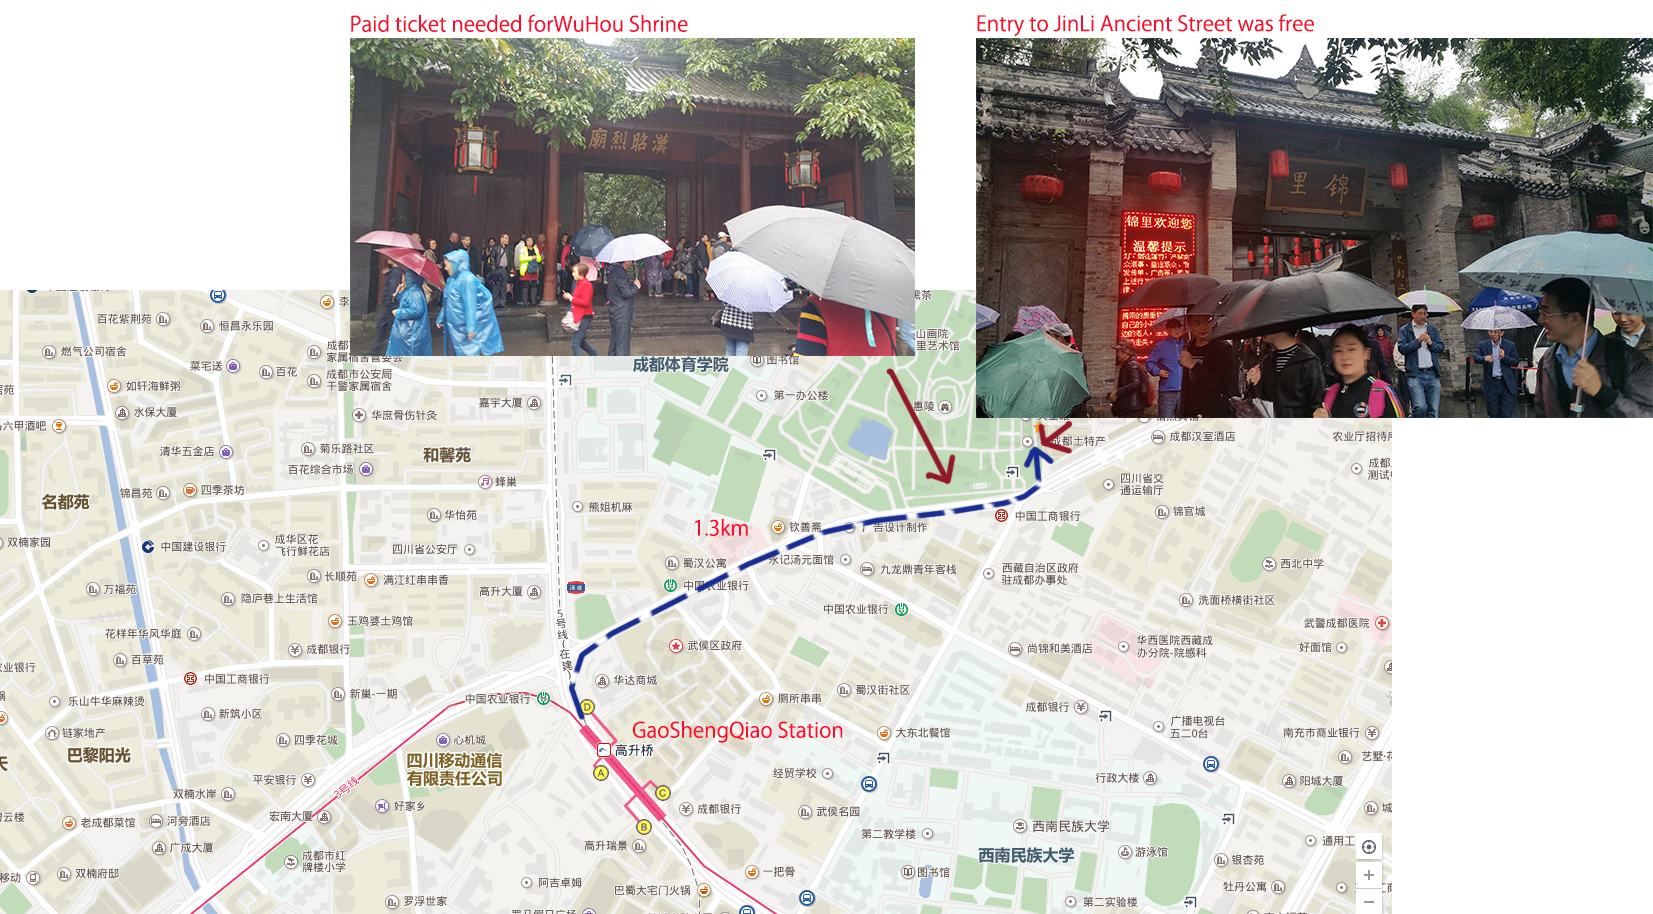 walking route from train station to JinLi Ancient Street